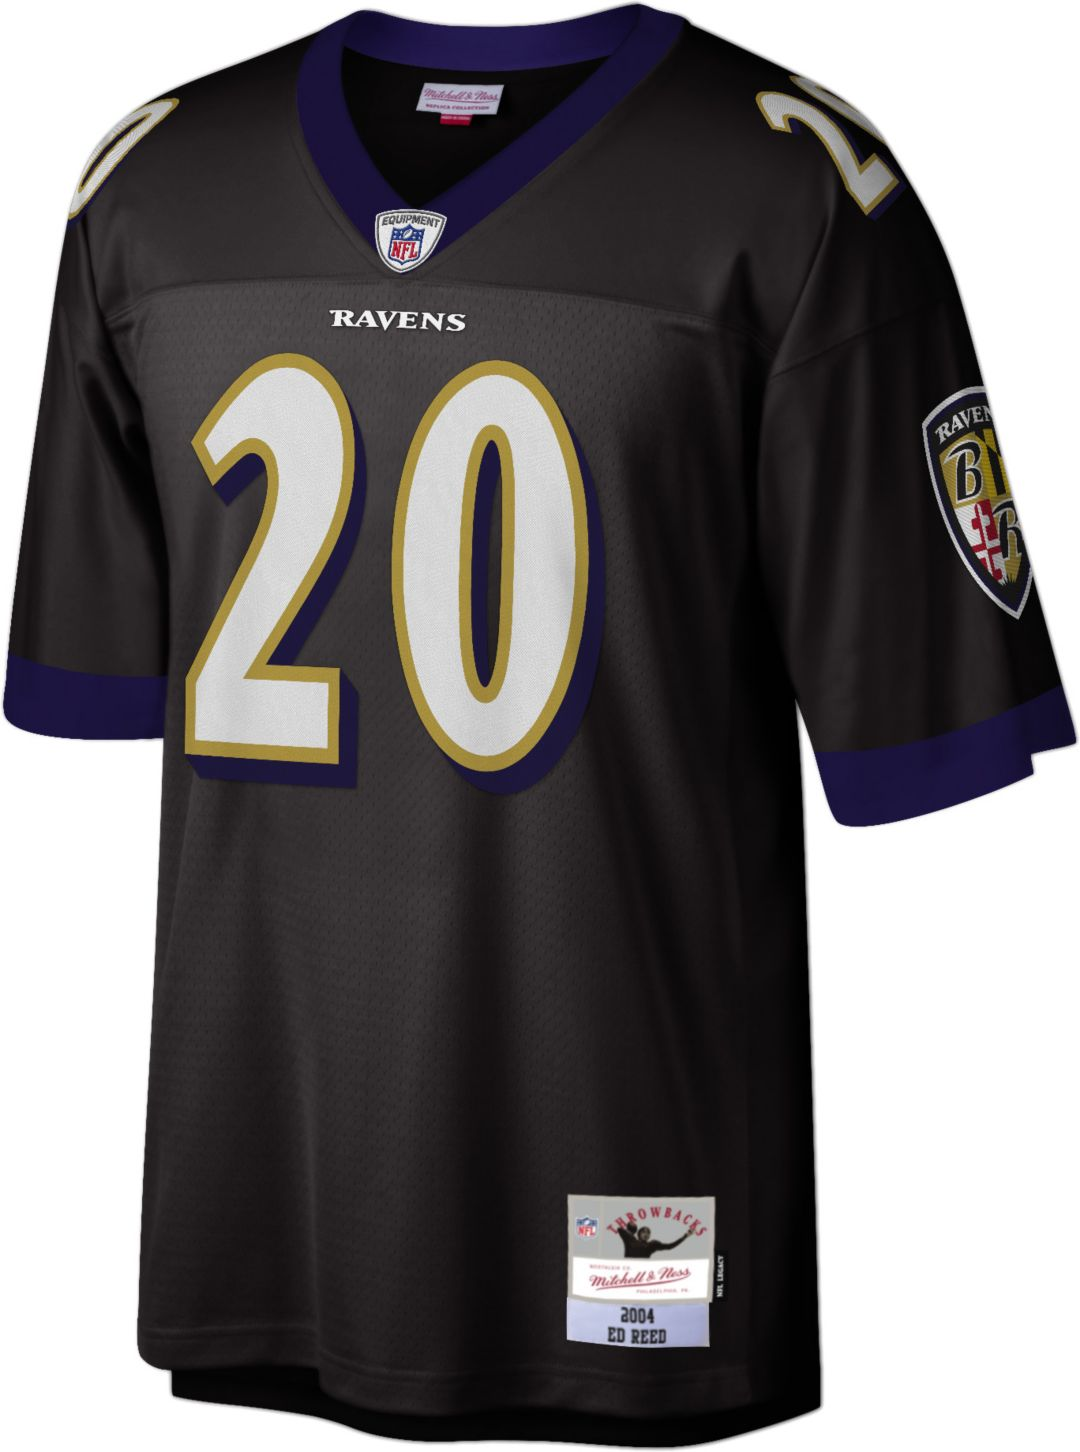 14139af9 Mitchell & Ness Men's 2004 Home Game Jersey Baltimore Ravens Ed Reed #20